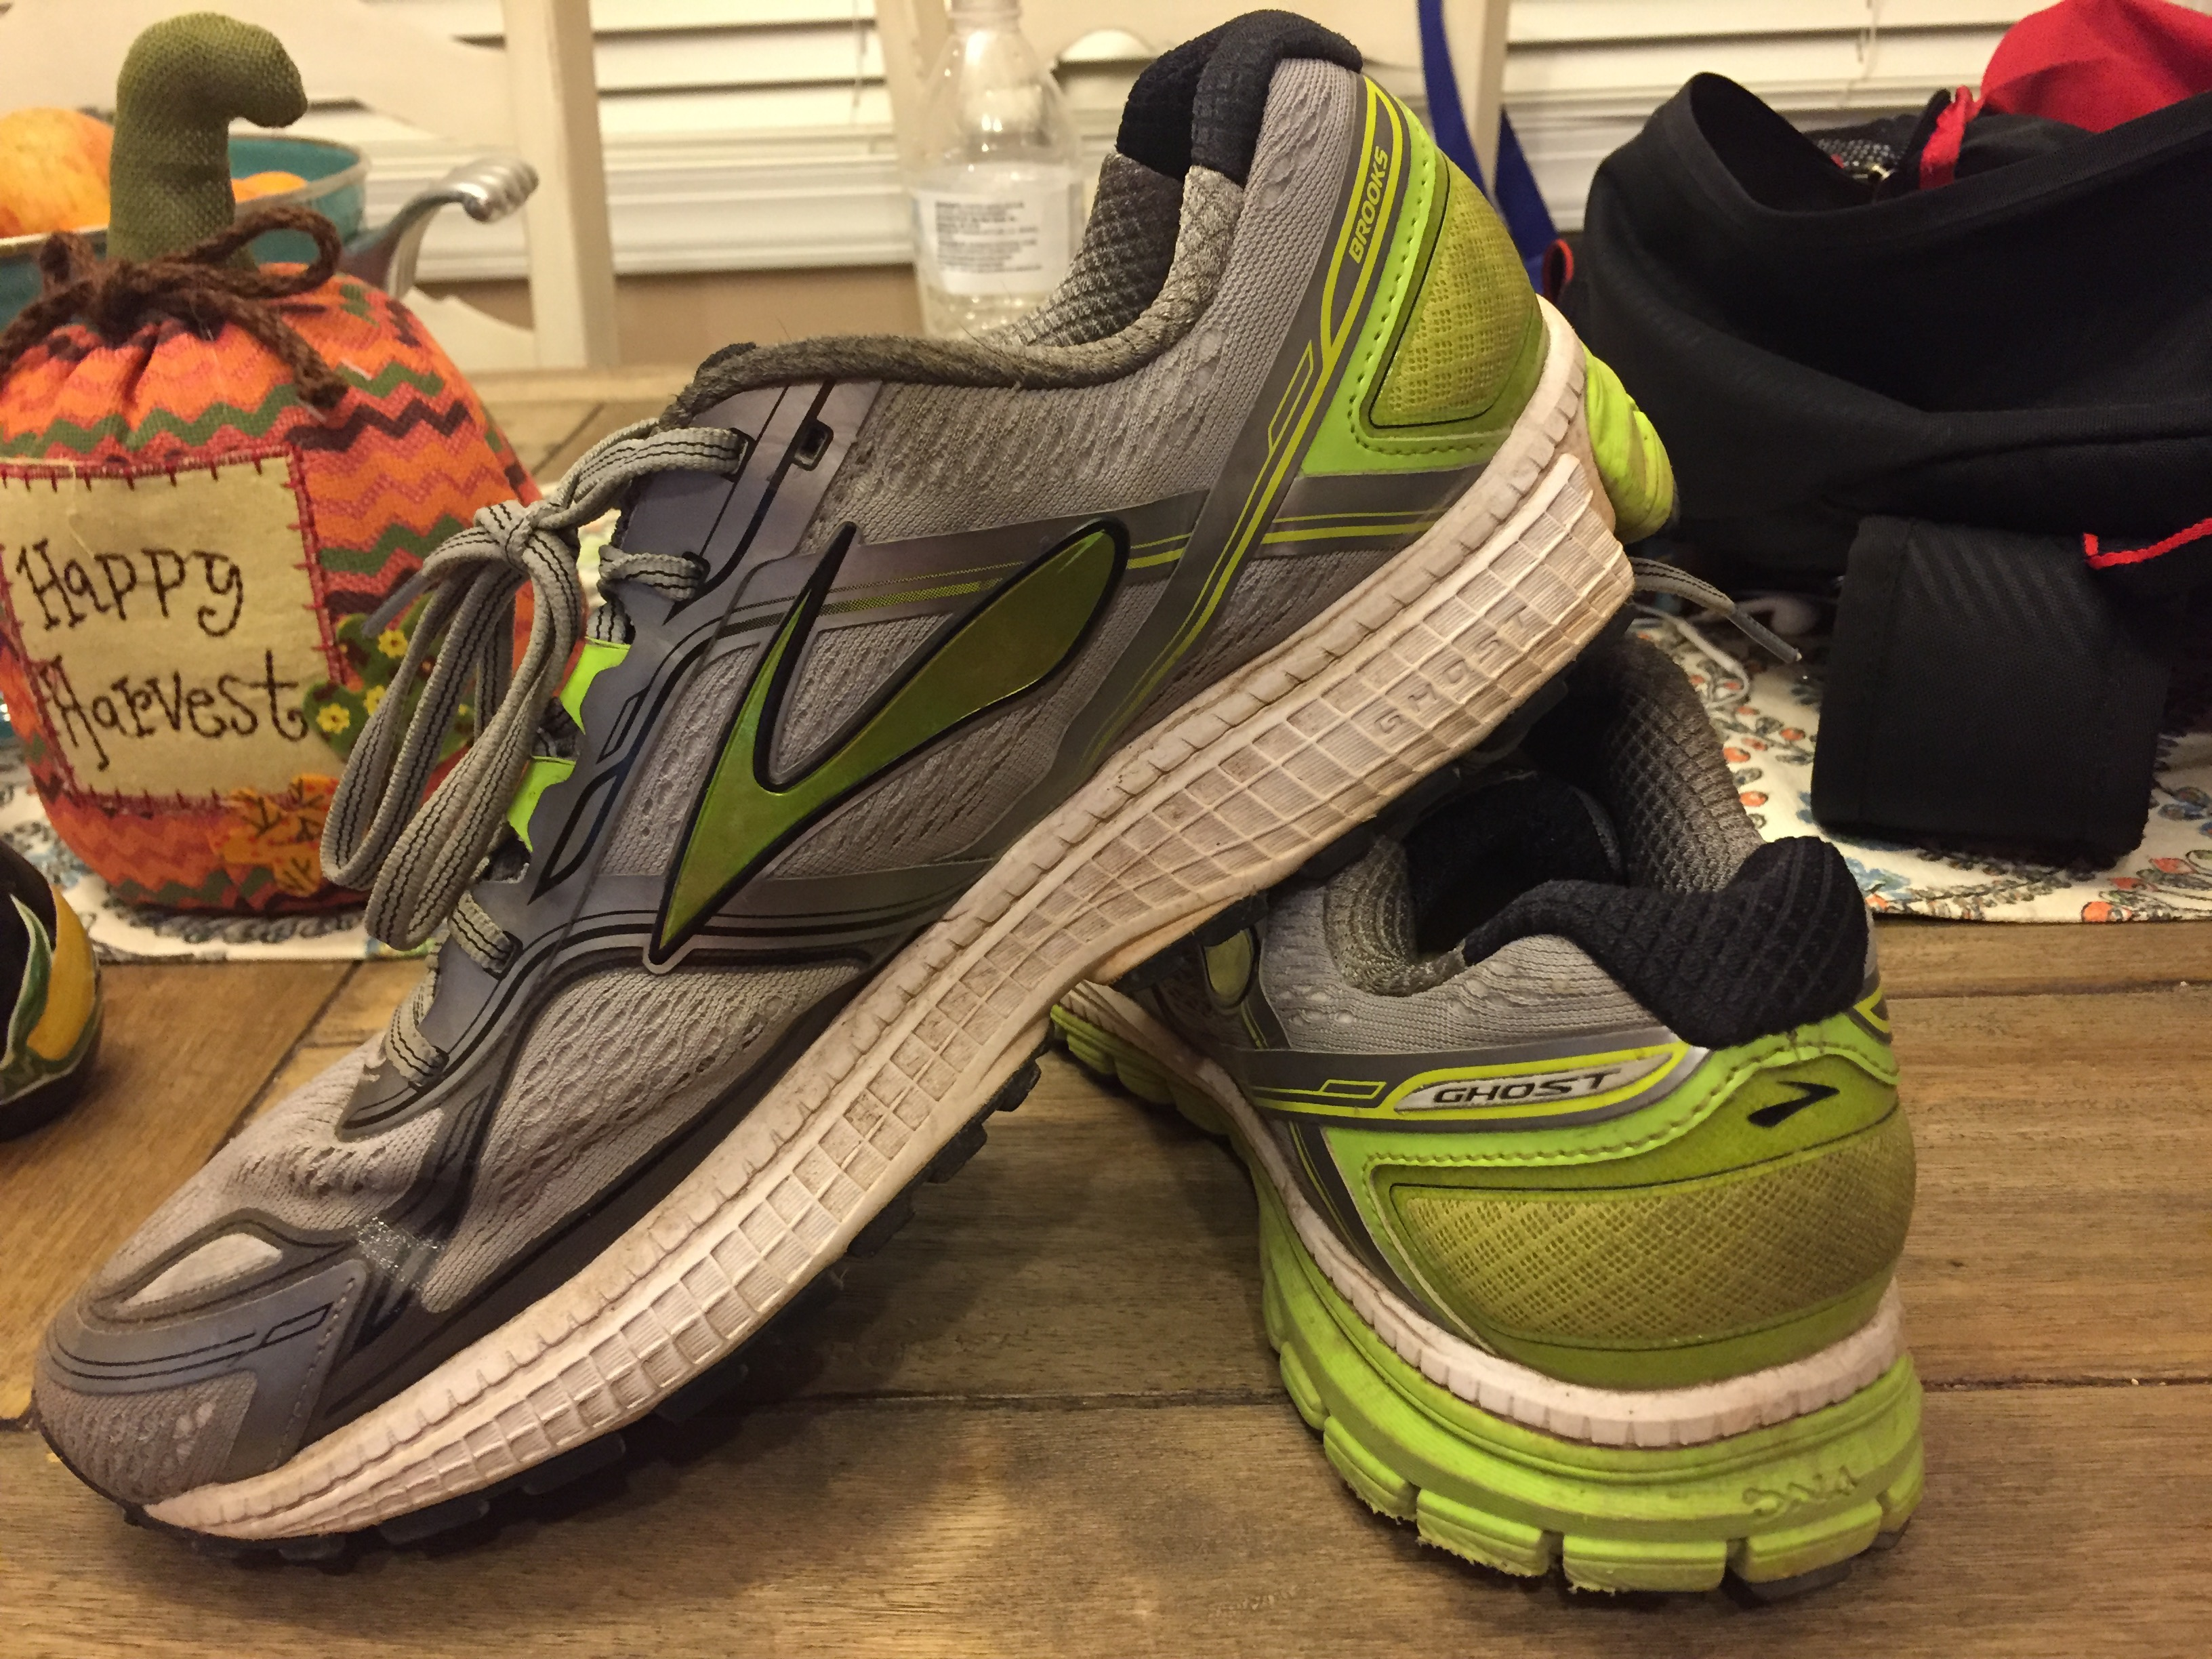 Shoe review: Brooks Ghost 8 – This Running Life